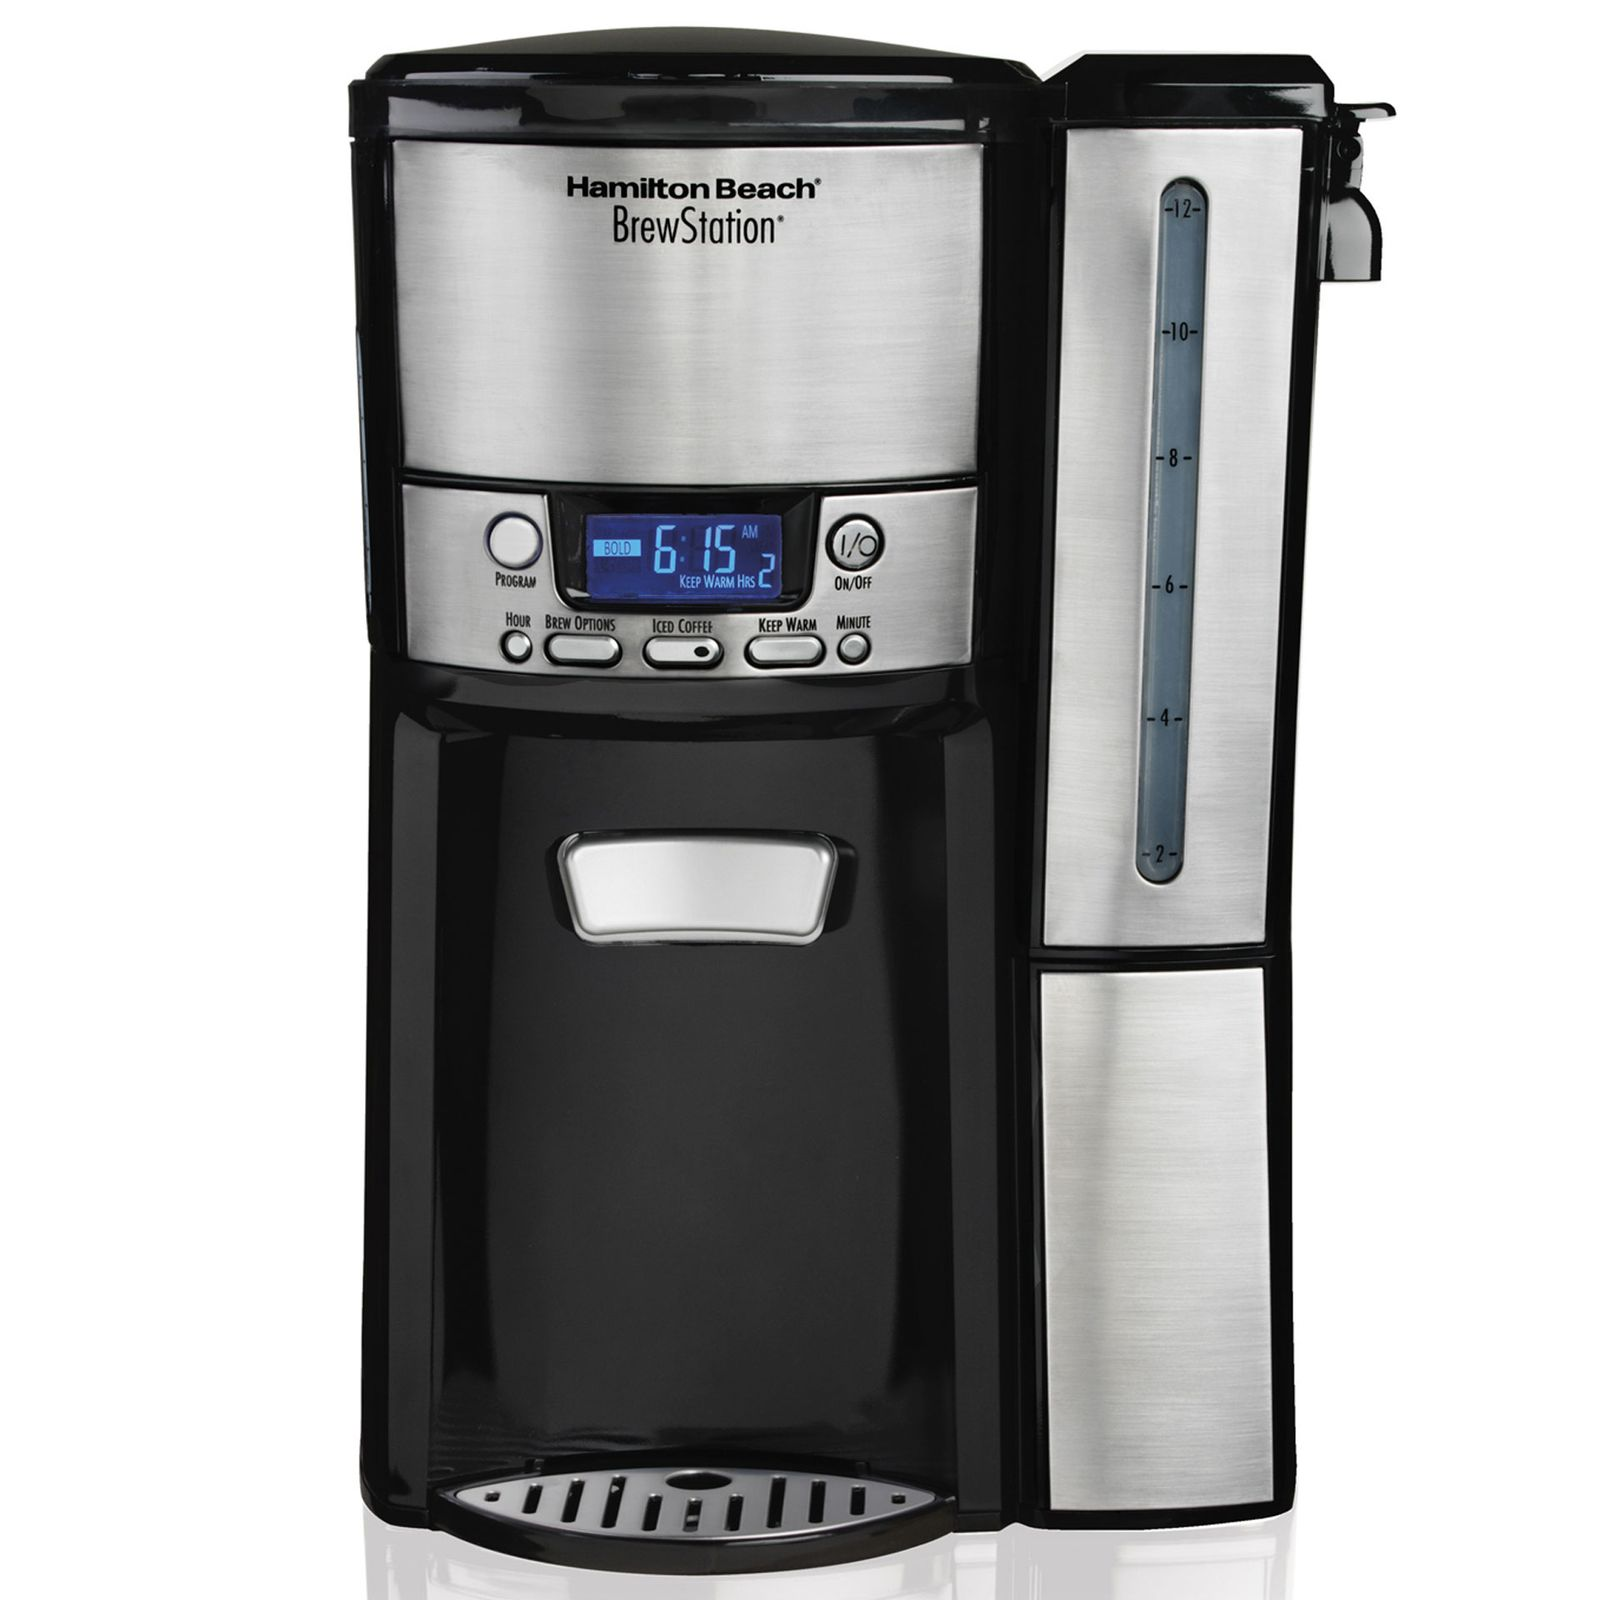 Hamilton Beach BrewStation 12-Cup Dispensing Coffee Maker With Removable Reservoir #47950 Review